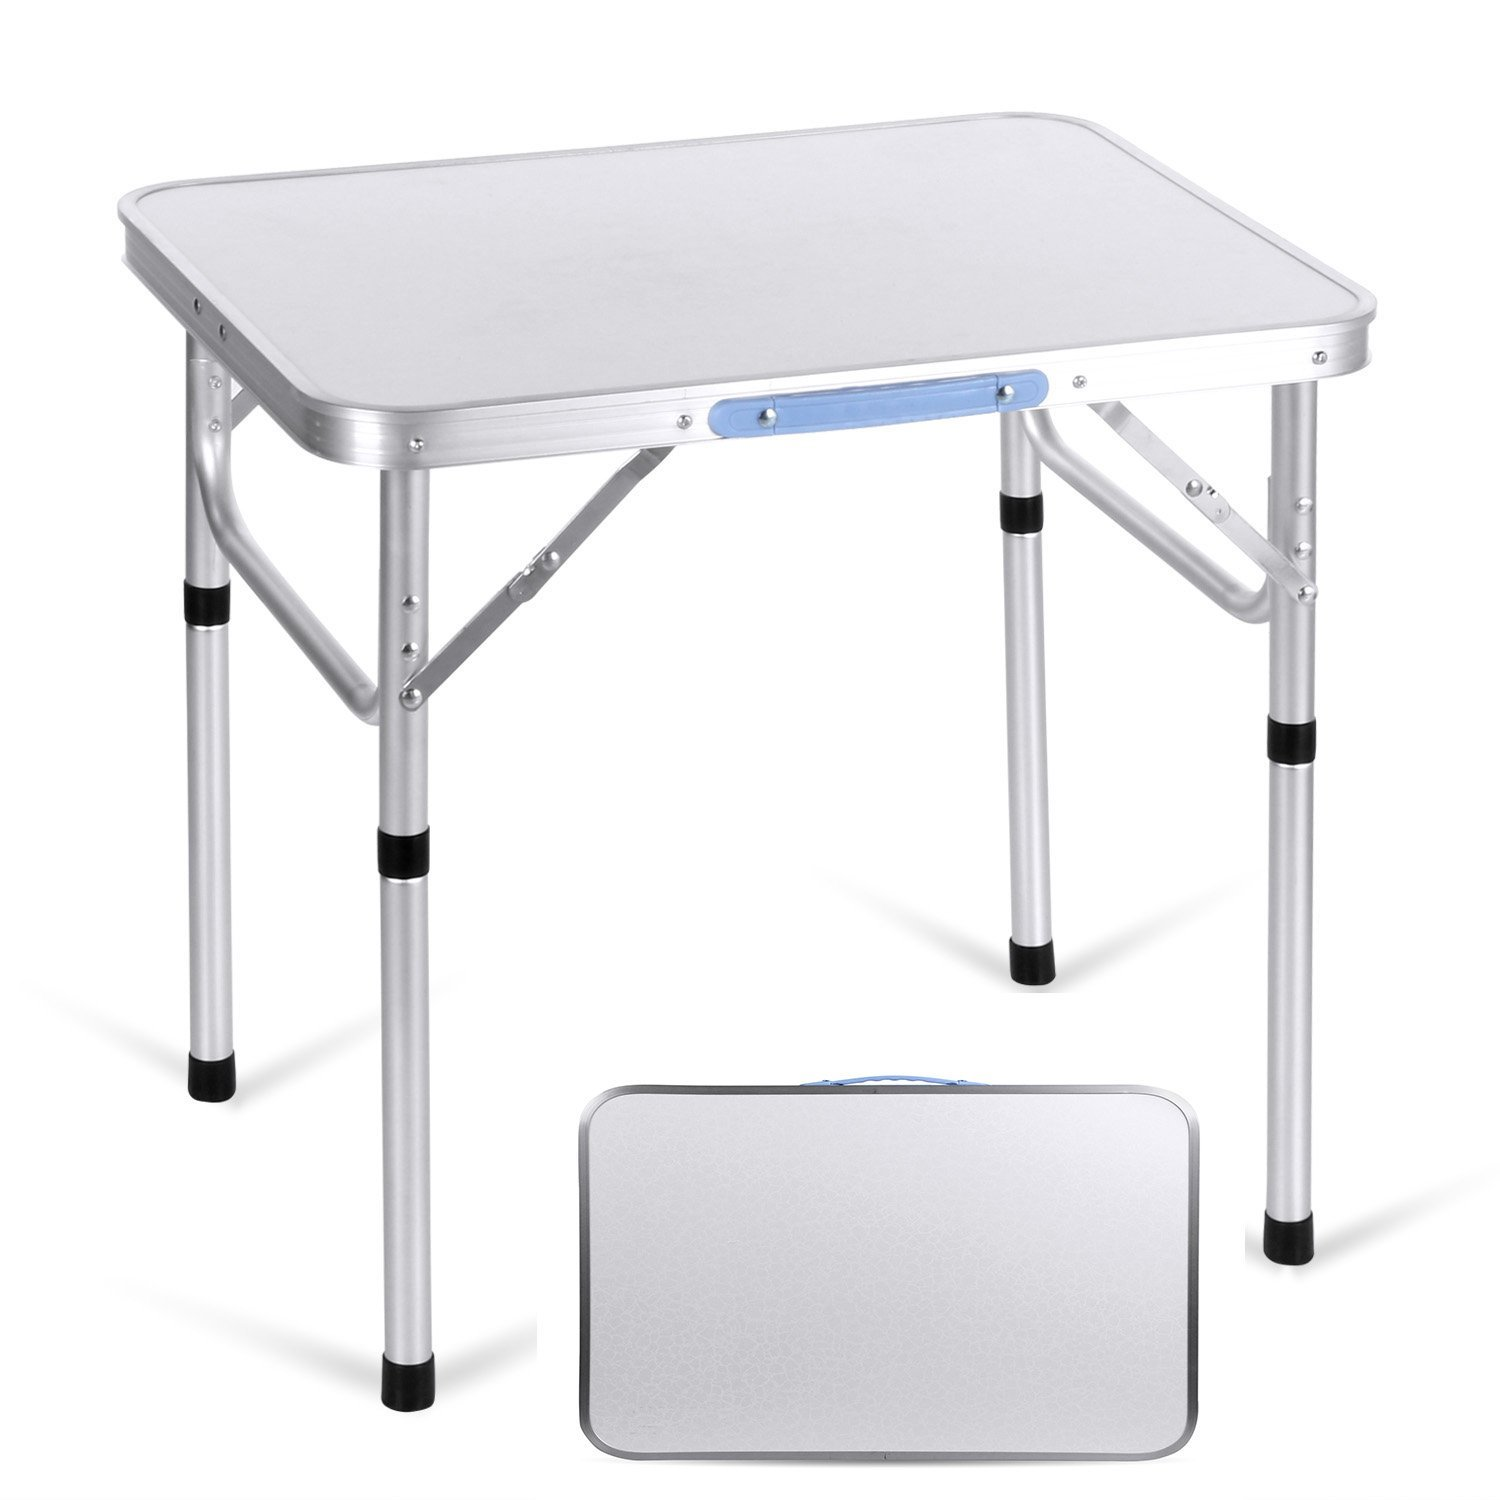 Get Quotations  C2 Bft 4ft Ultralight Aluminum Portable Folding Utility Table With Carrying Handle For Hiking